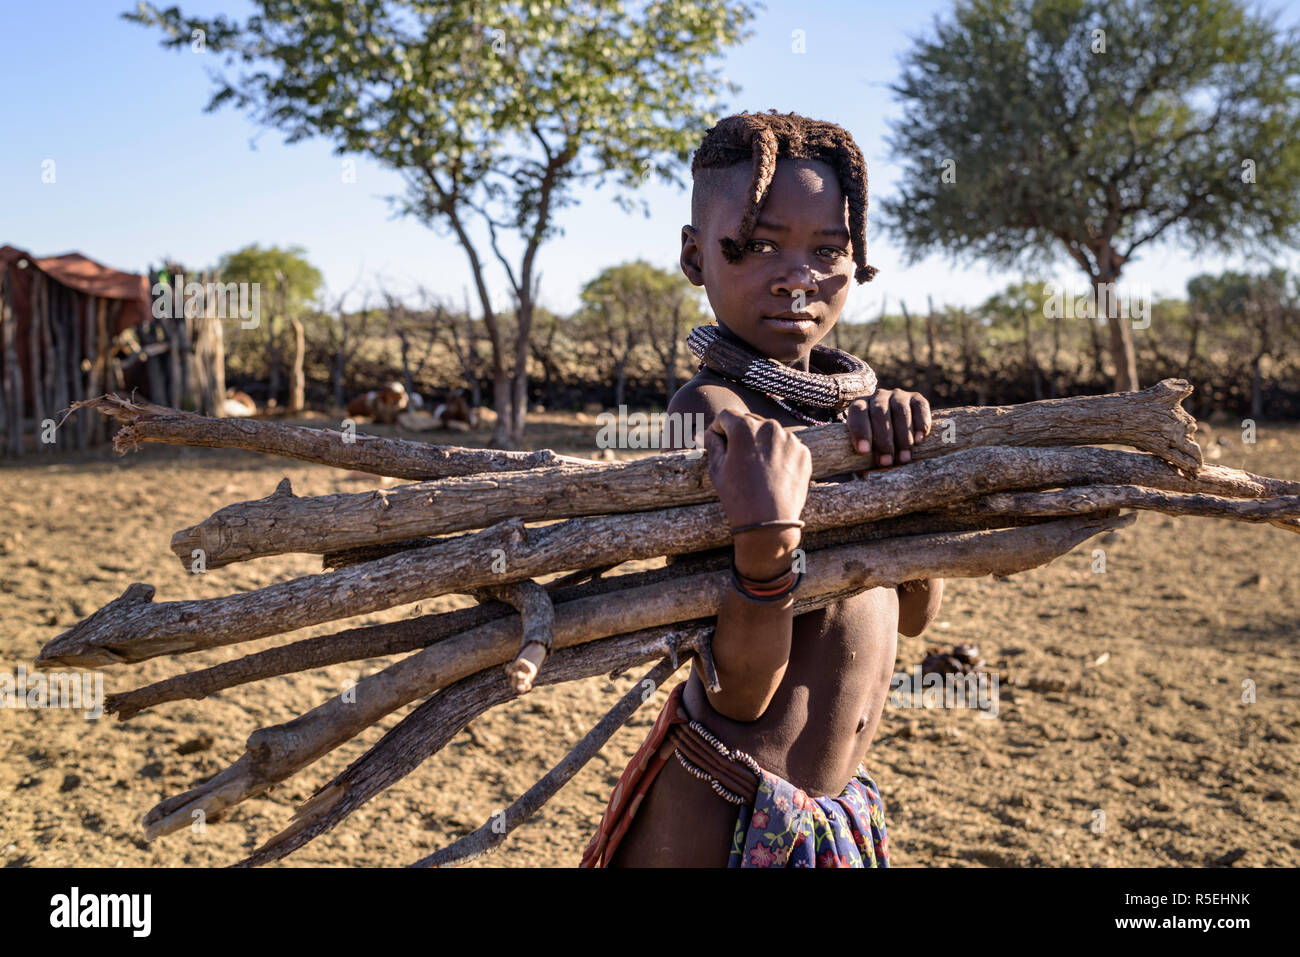 Young Himba girl collecting firewood in a village. - Stock Image